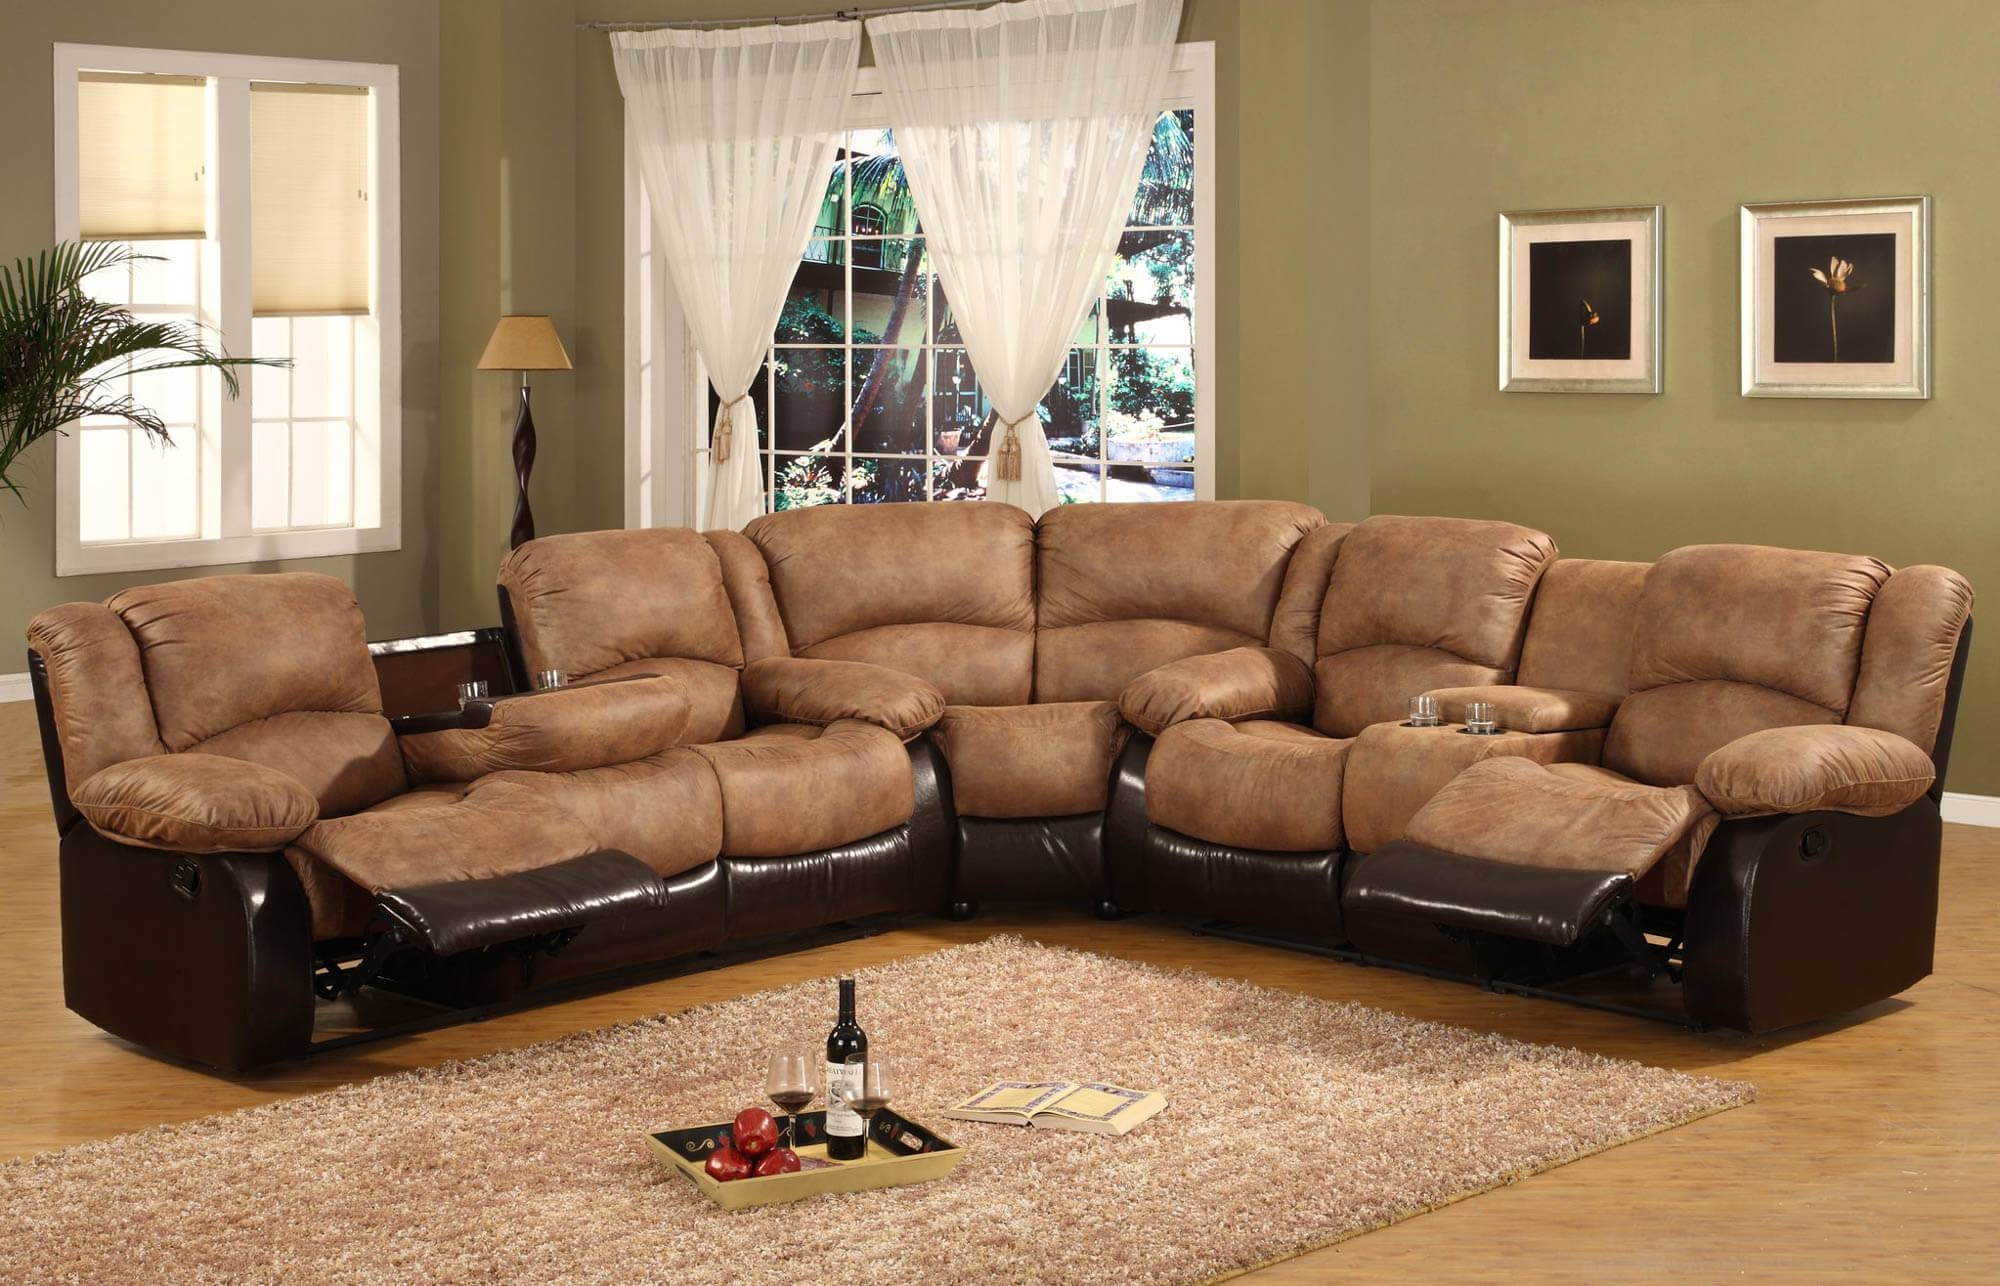 Comfortable Leather Sectional Sofas | Tehranmix Decoration Regarding Soft Sectional Sofas (View 6 of 30)